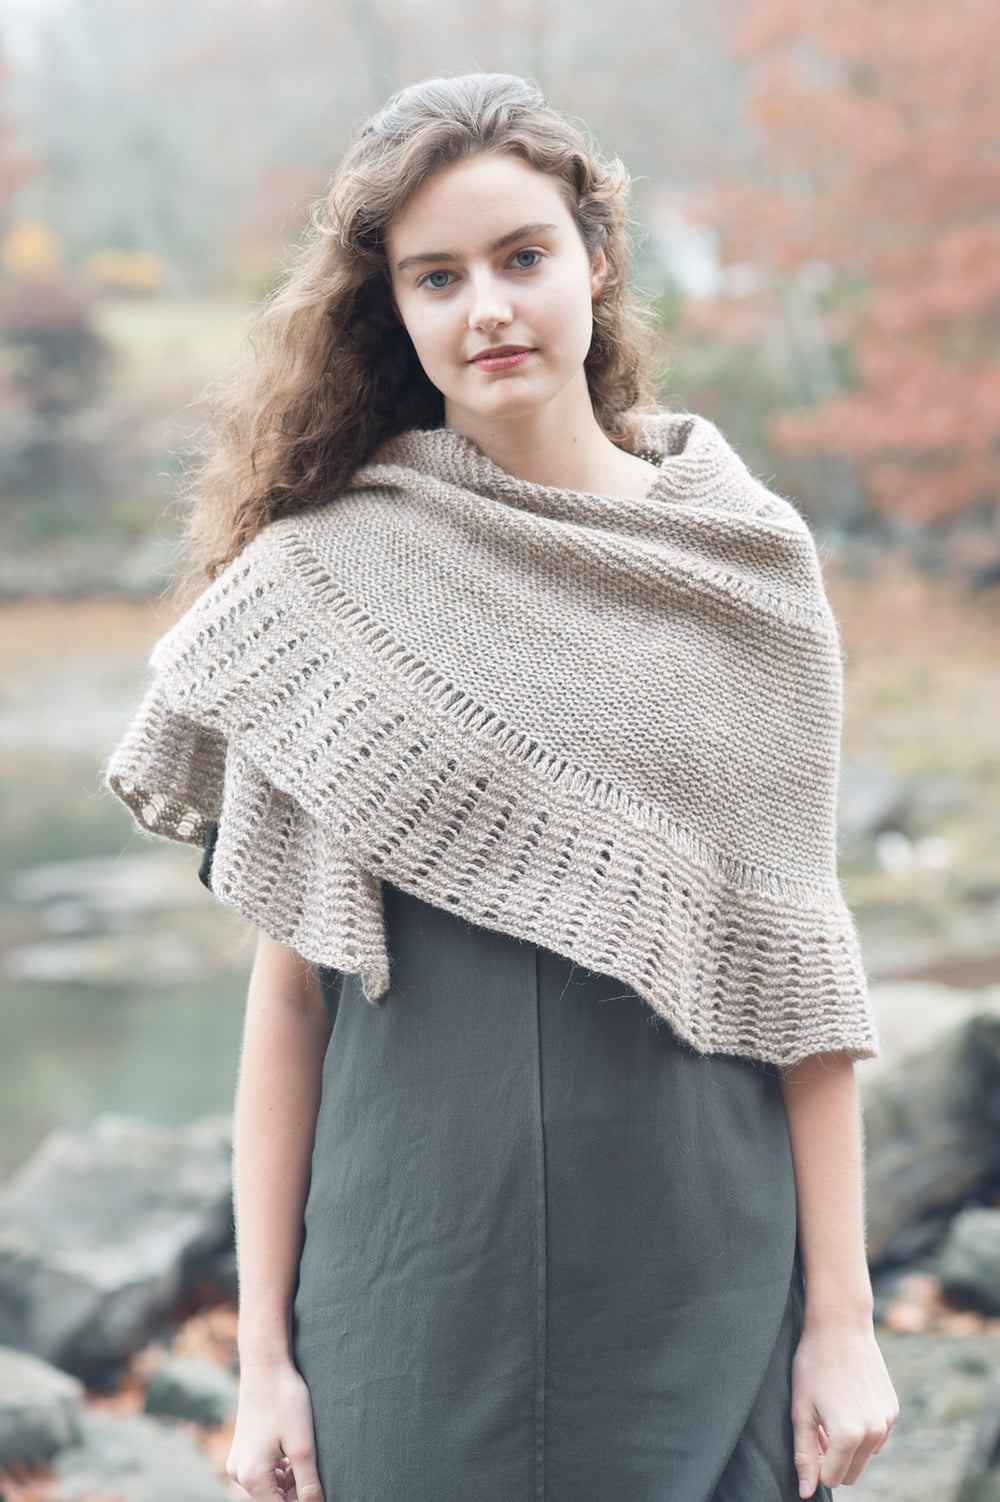 Leading Bird Shawl designed by Leah B. Thibault for Quince & Co.